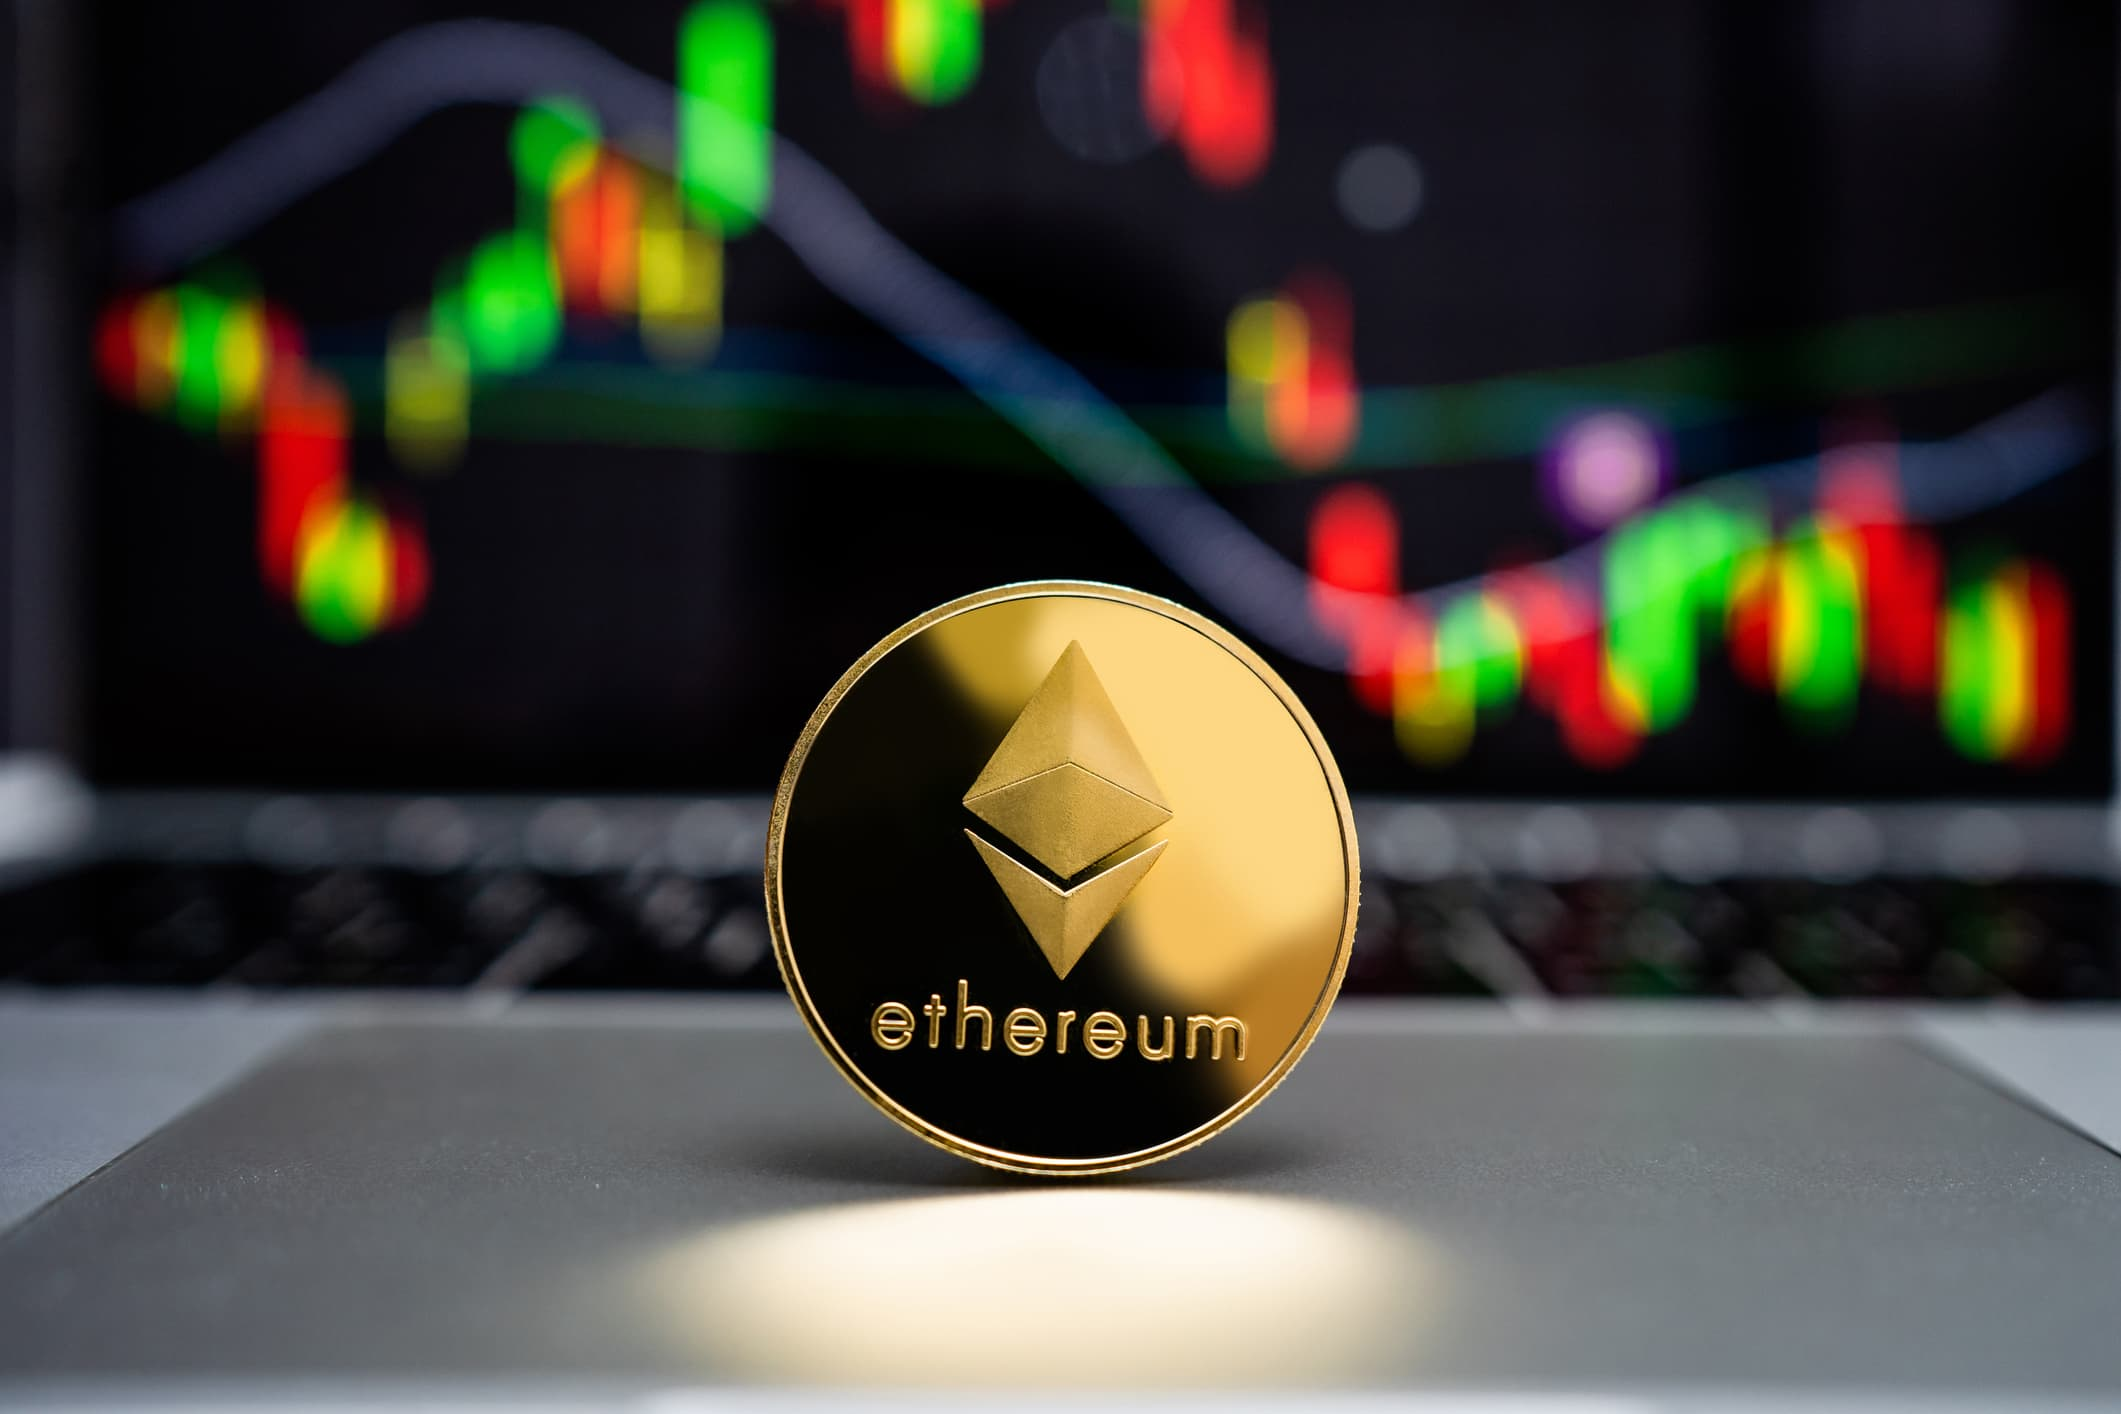 A 'significant' upgrade to Ethereum is rolling out this week—here's what crypto investors should know